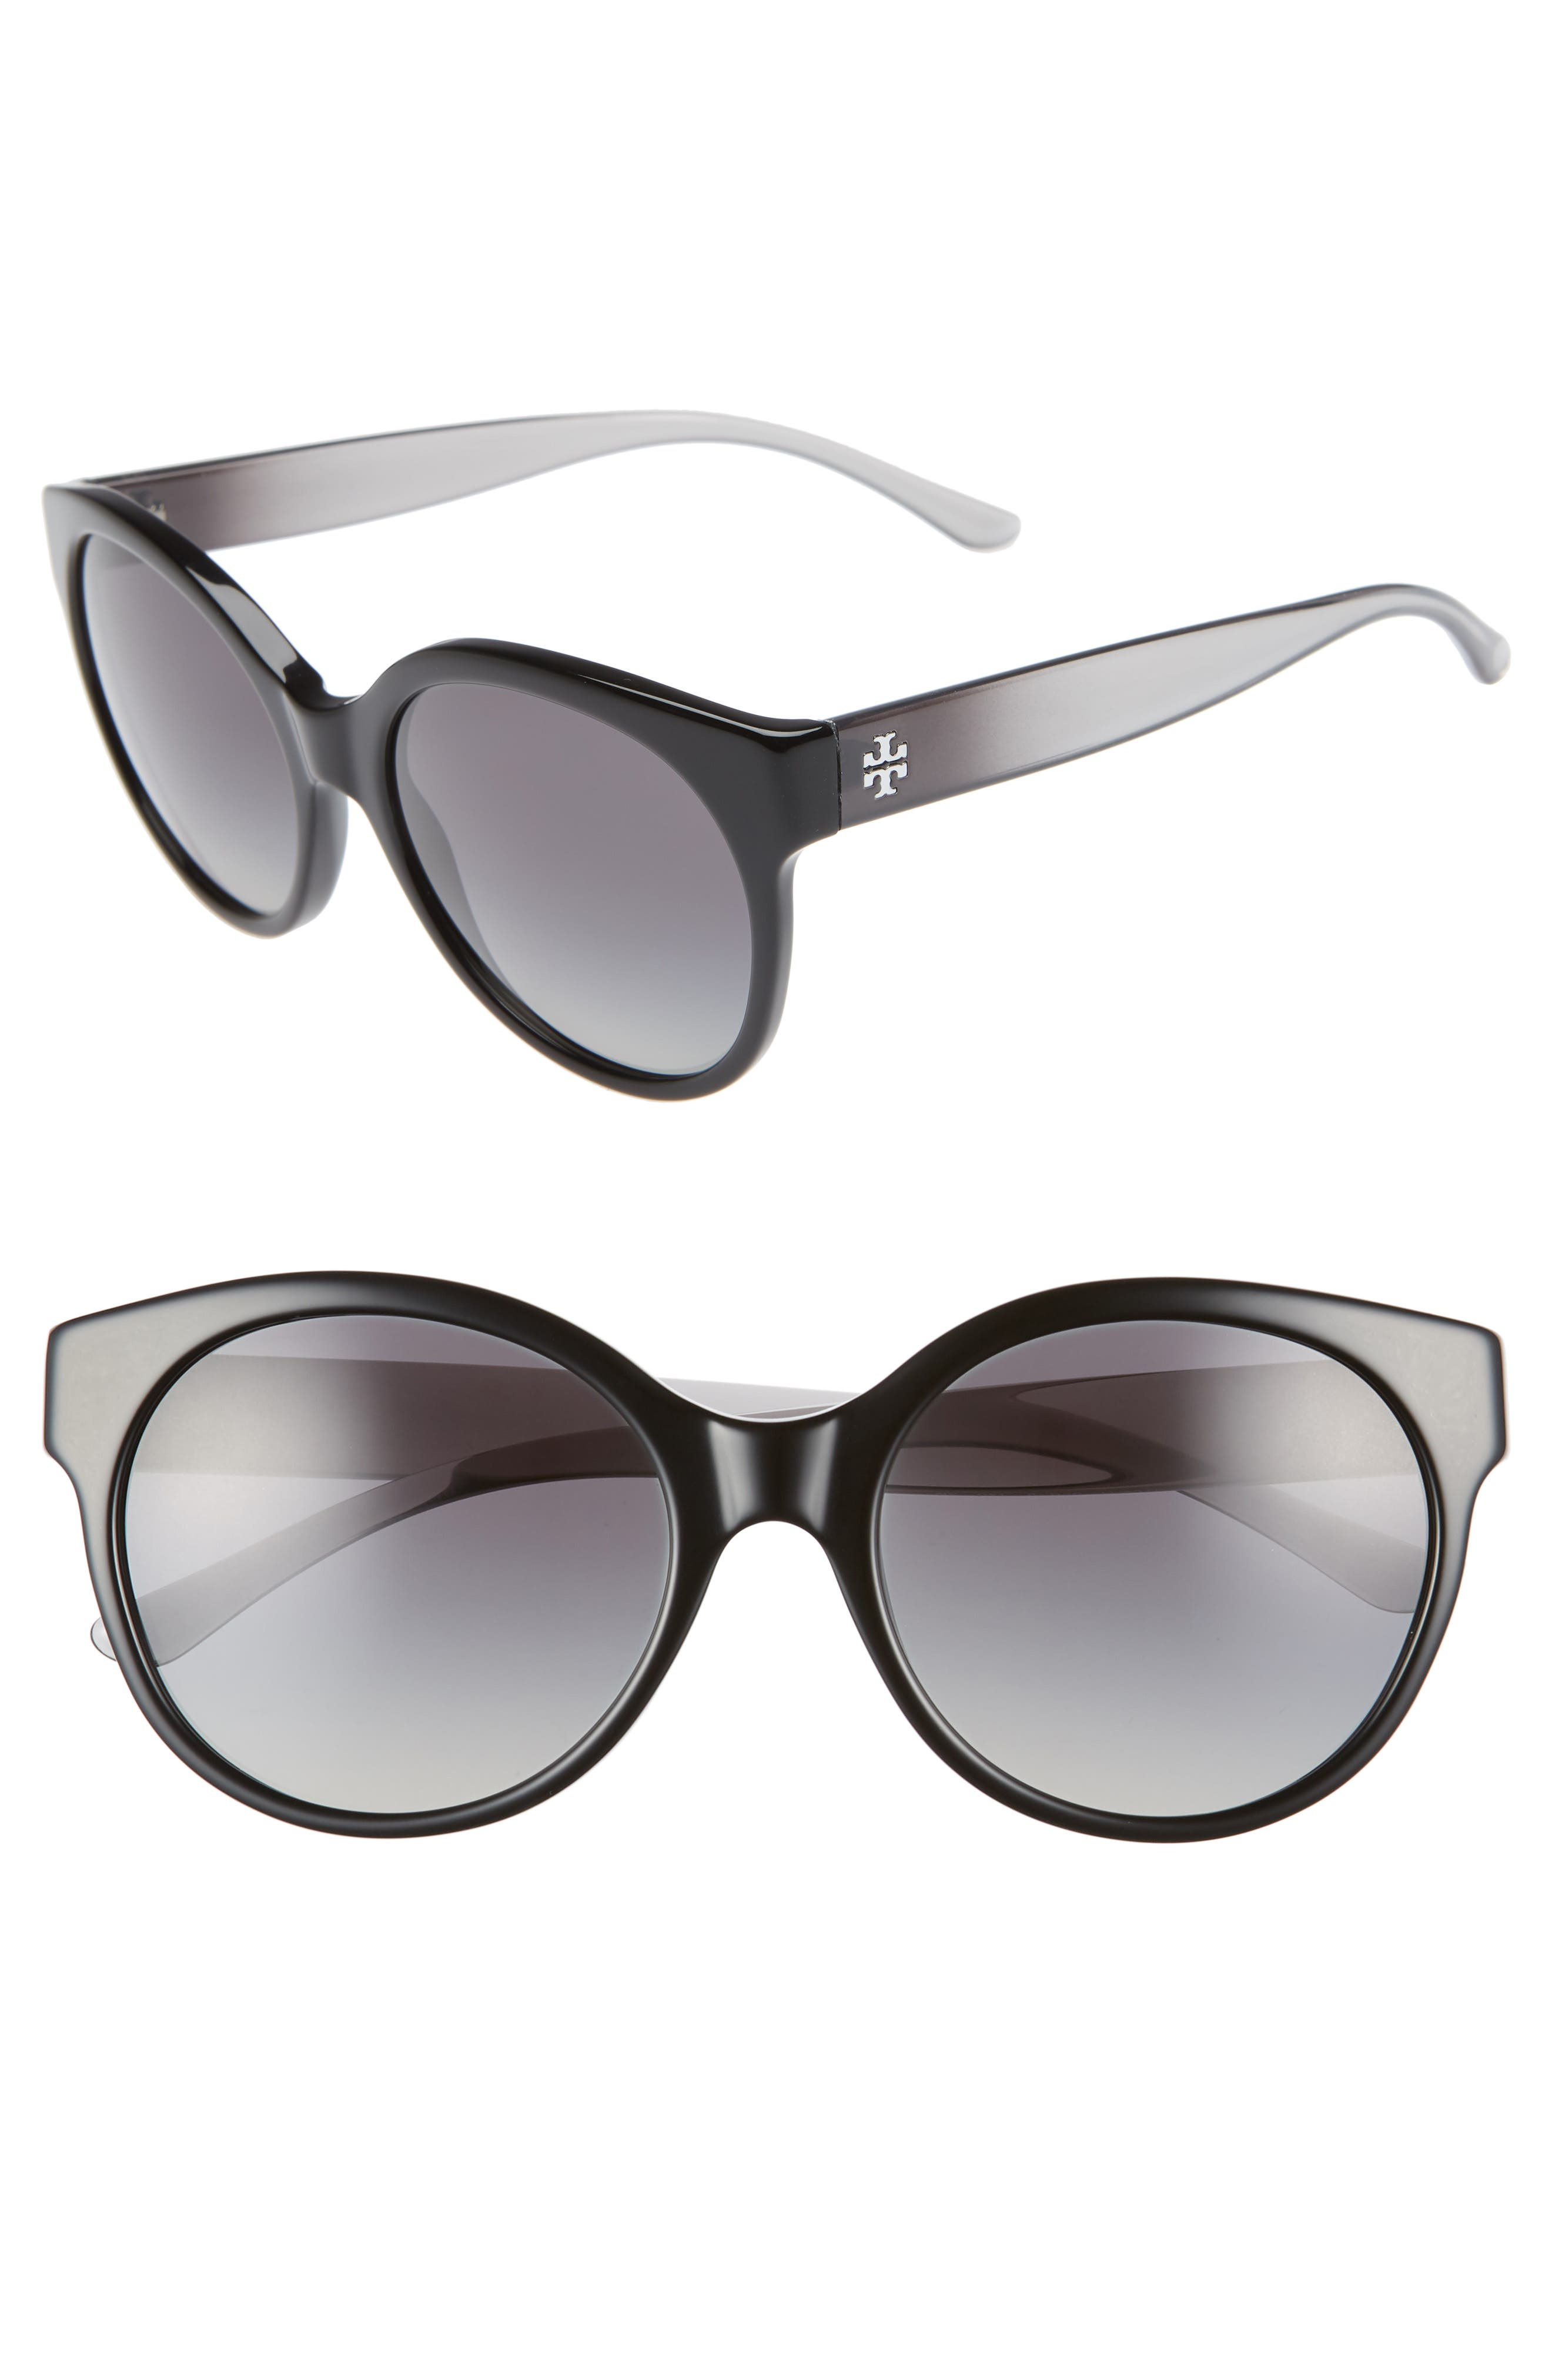 TORY BURCH Stacked T 55mm Round Sunglasses, Main, color, BLACK GRADIENT